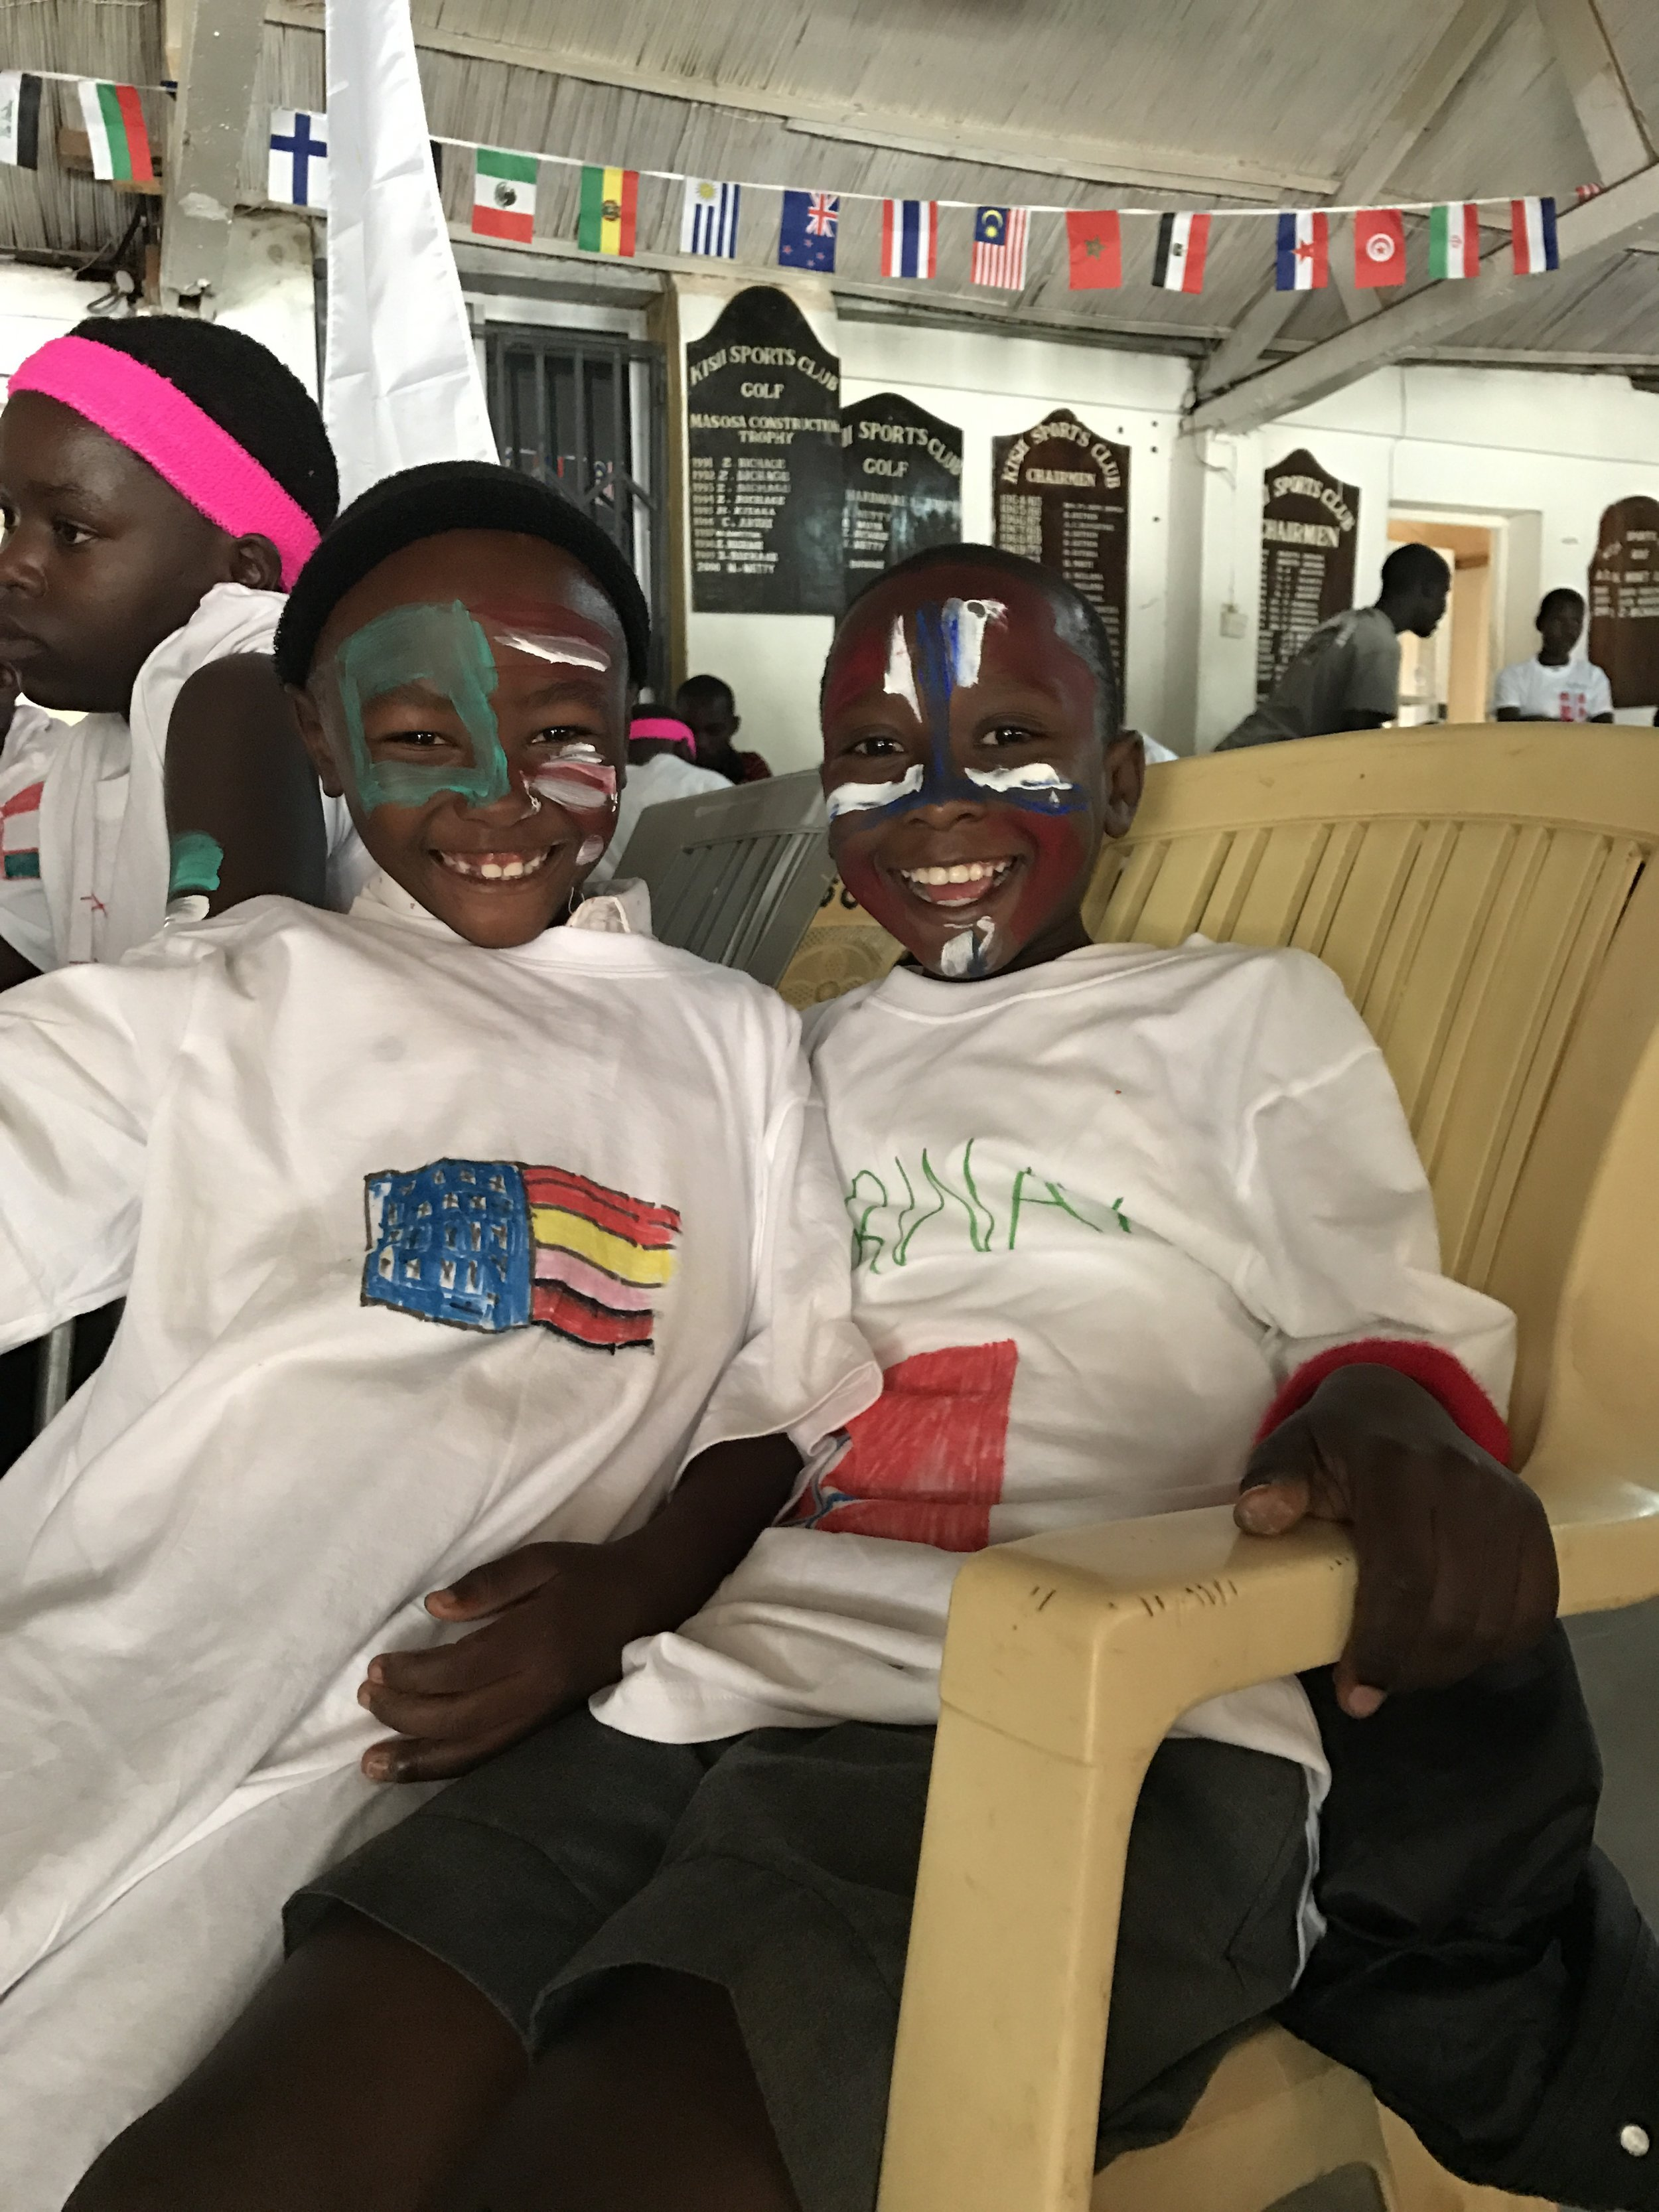 Enoch and Fabian representing team USA and team Norway at the Ajiri Olympics. They were cheered on by former Ajiri students.